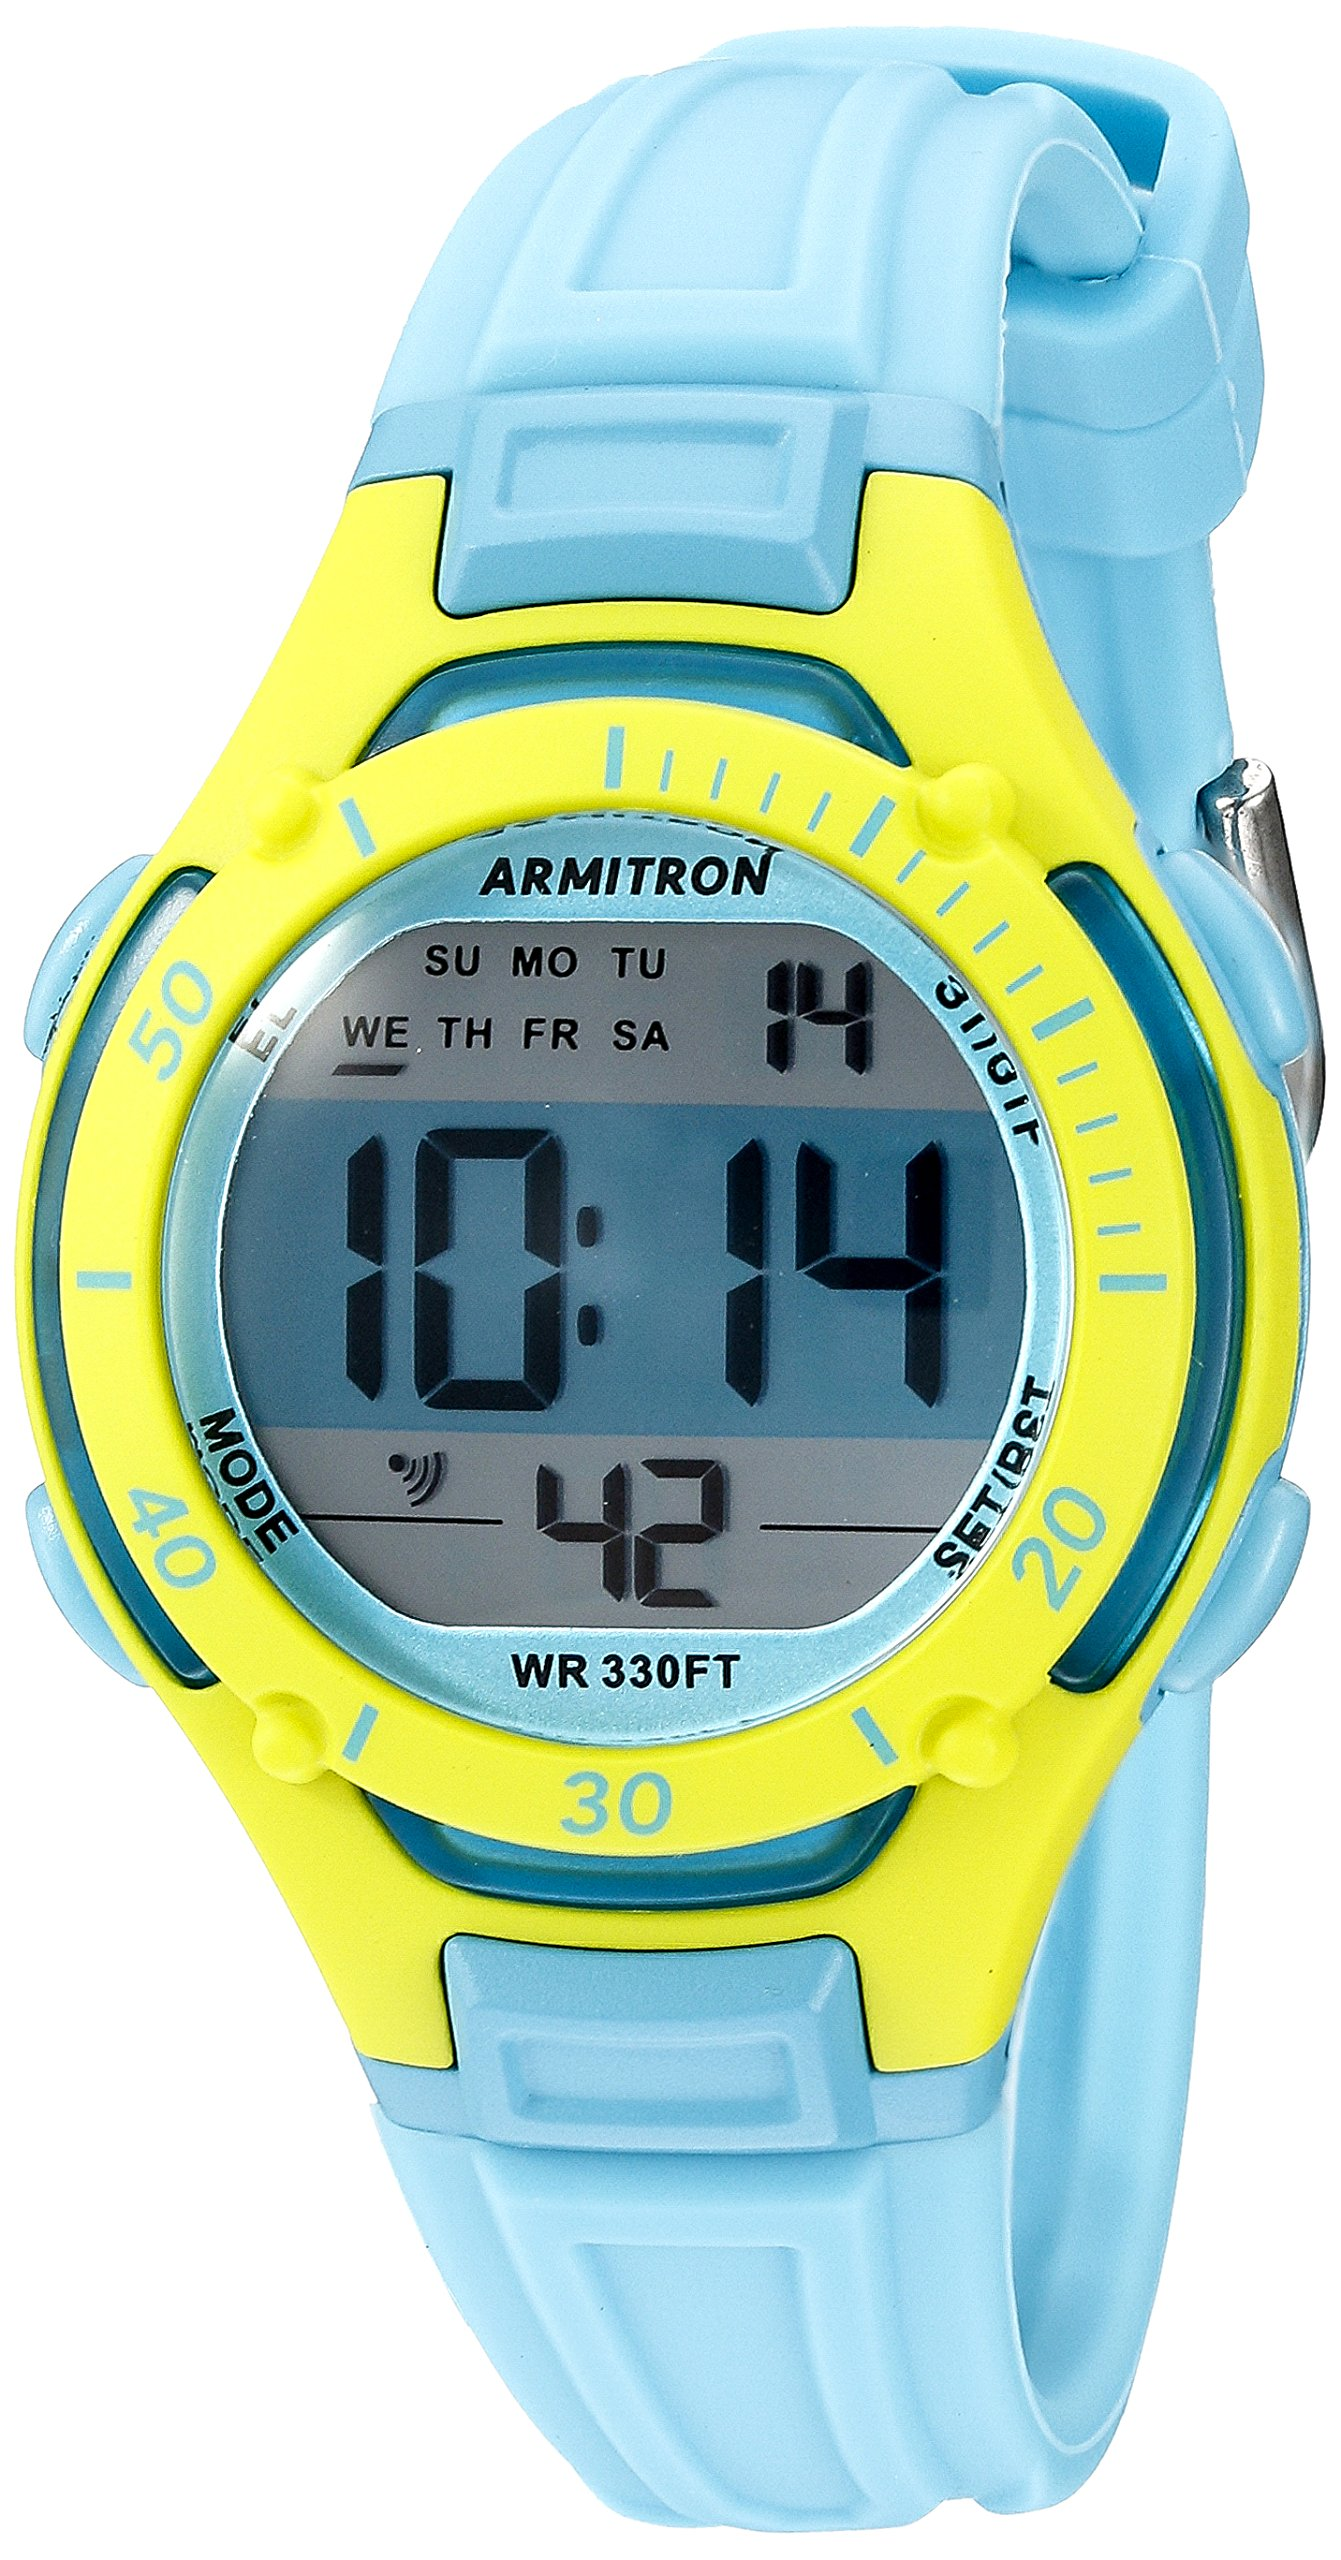 Armitron Women's 45/7062BLU Lime Green Accented Digital Chronograph Light Blue Resin Strap Watch by Armitron Sport